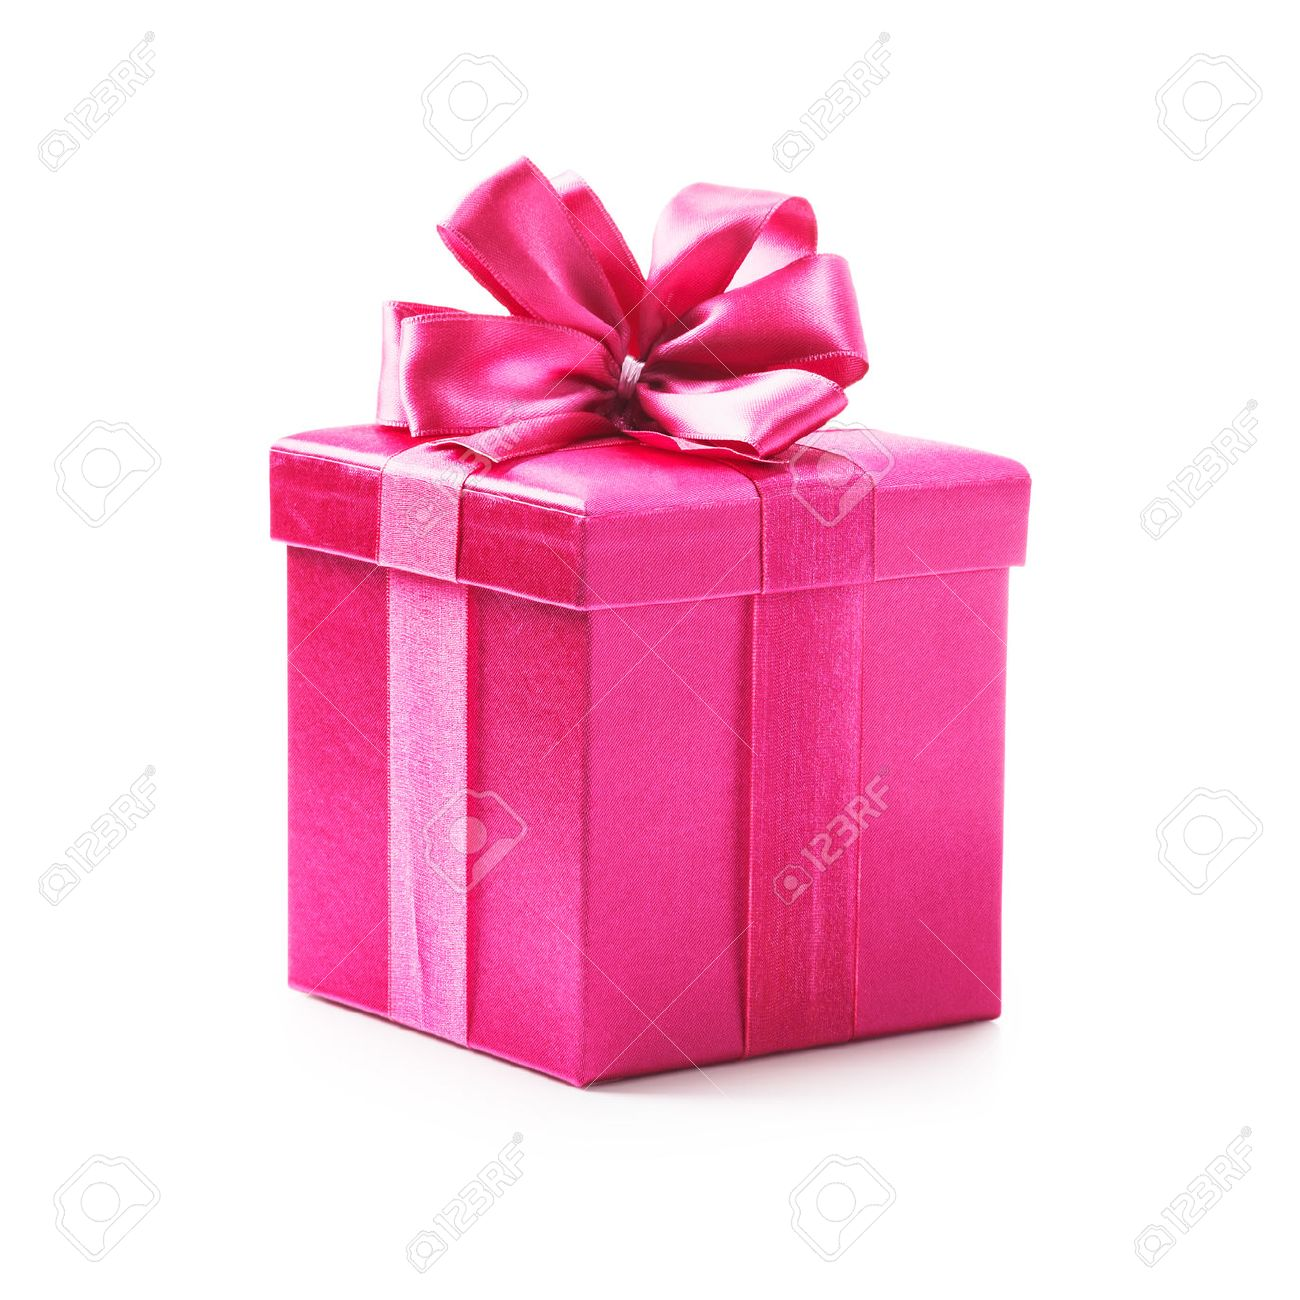 Red gift bows border with clipping path for easy background removing - Pink Ribbon Background Pink Gift Box With Ribbon Bow Holiday Present Object Isolated